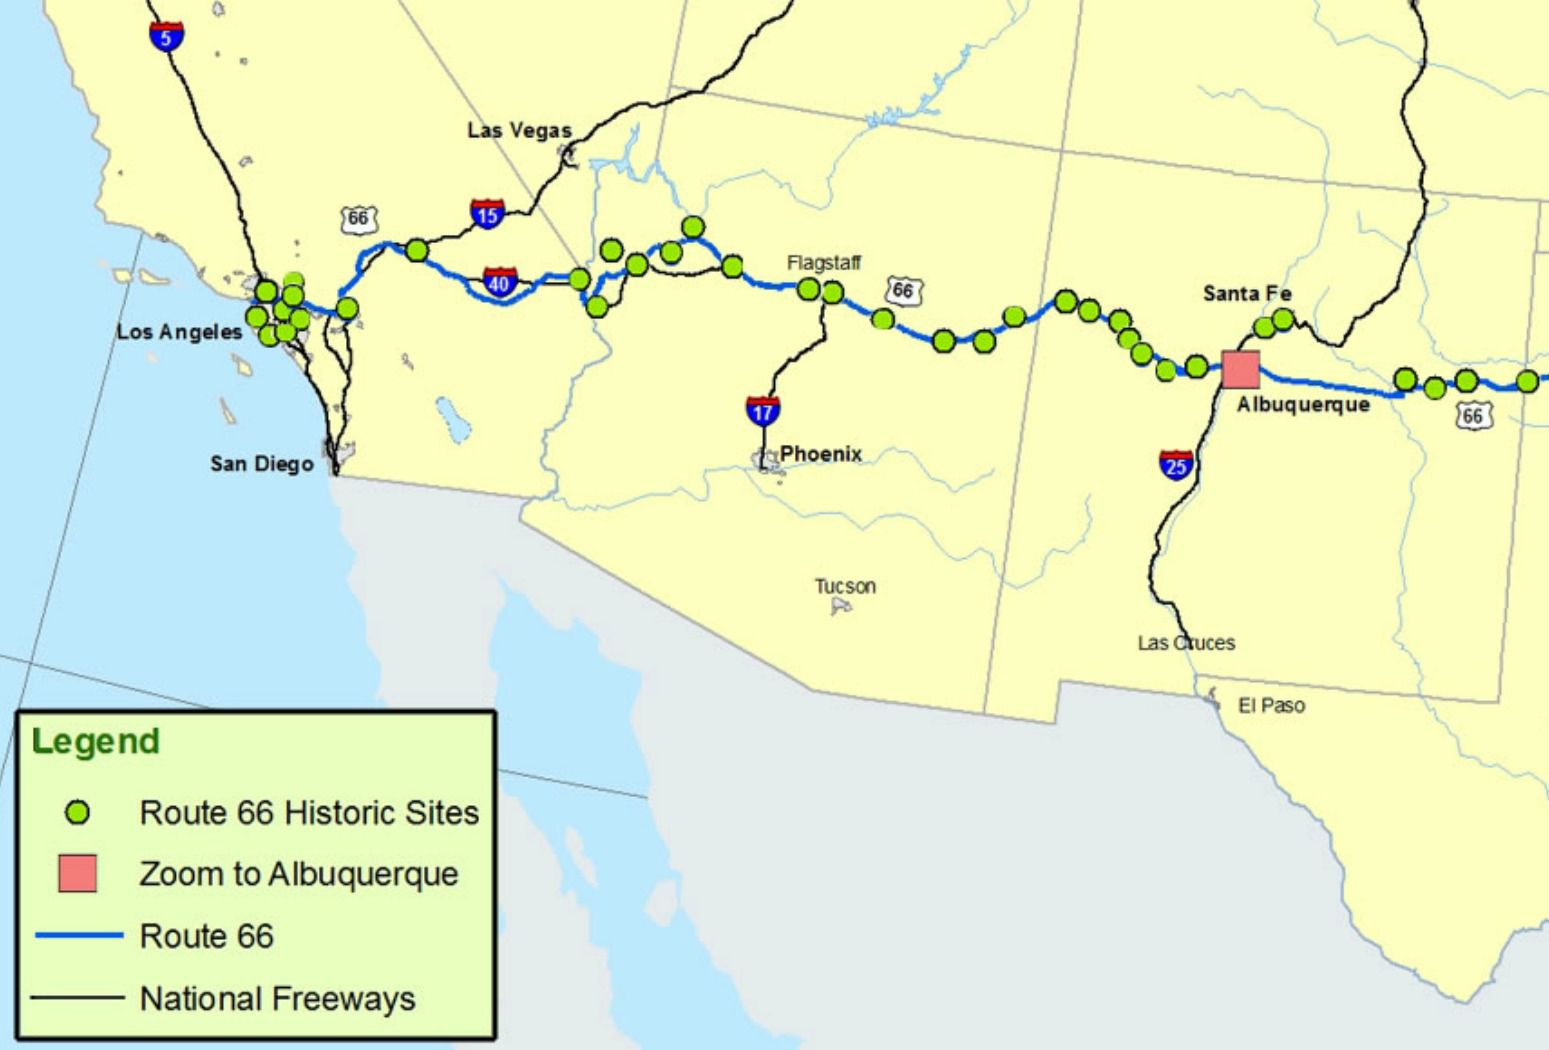 Maps Of Route 66: Plan Your Road Trip - Free Printable Route 66 Map